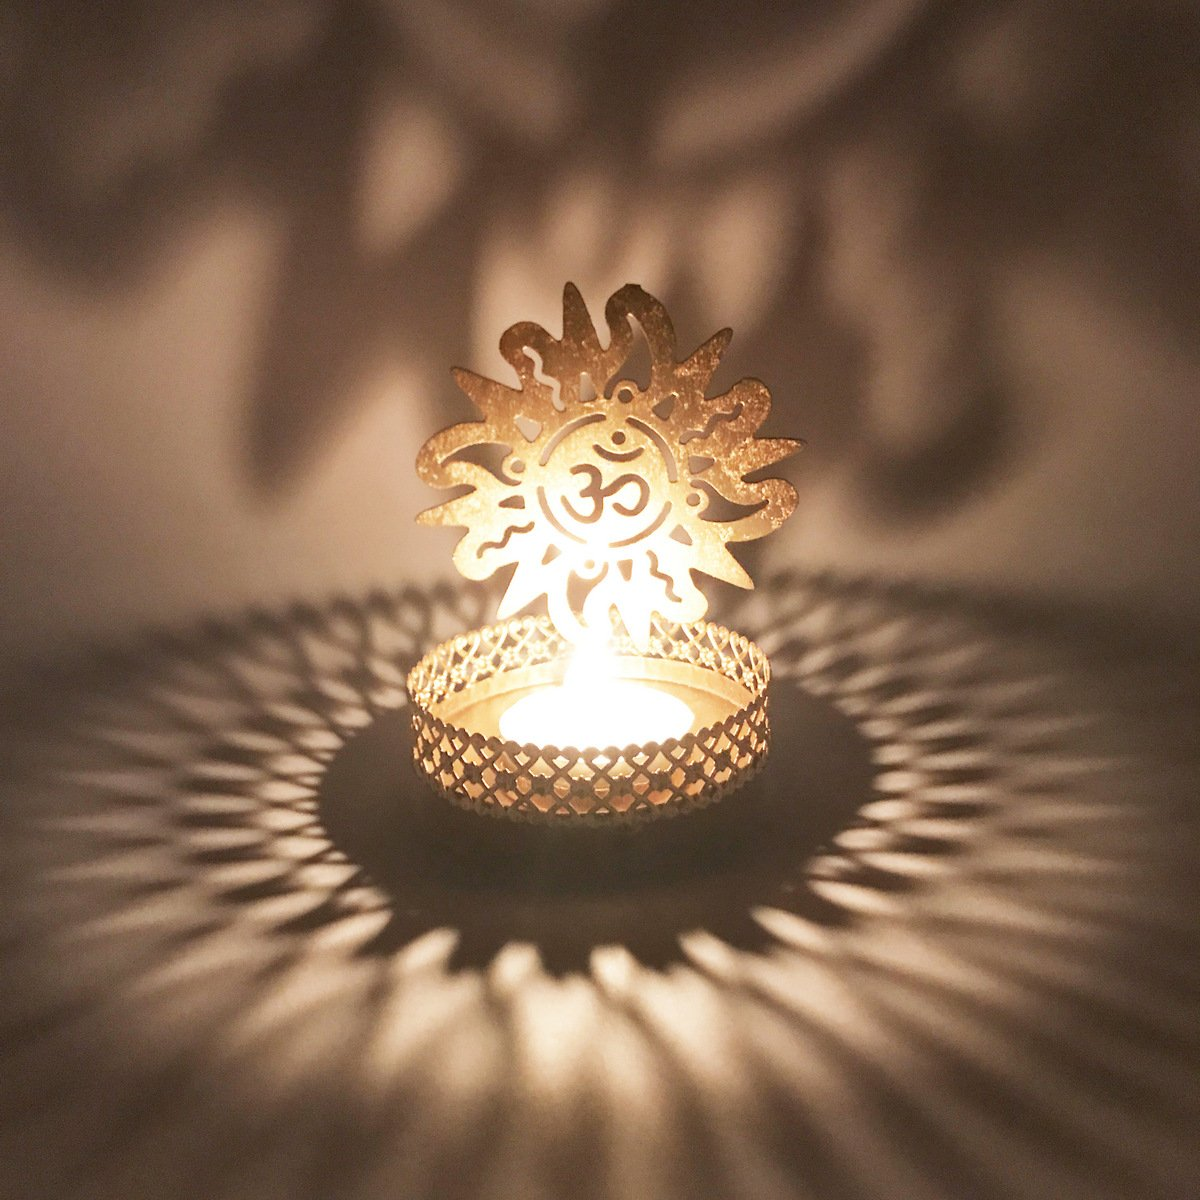 Divine™ Sun Shadow Lamps tealight candle holder dhoop holder stand for Pooja and Decorative Showpiece Gifts Set DivineTM